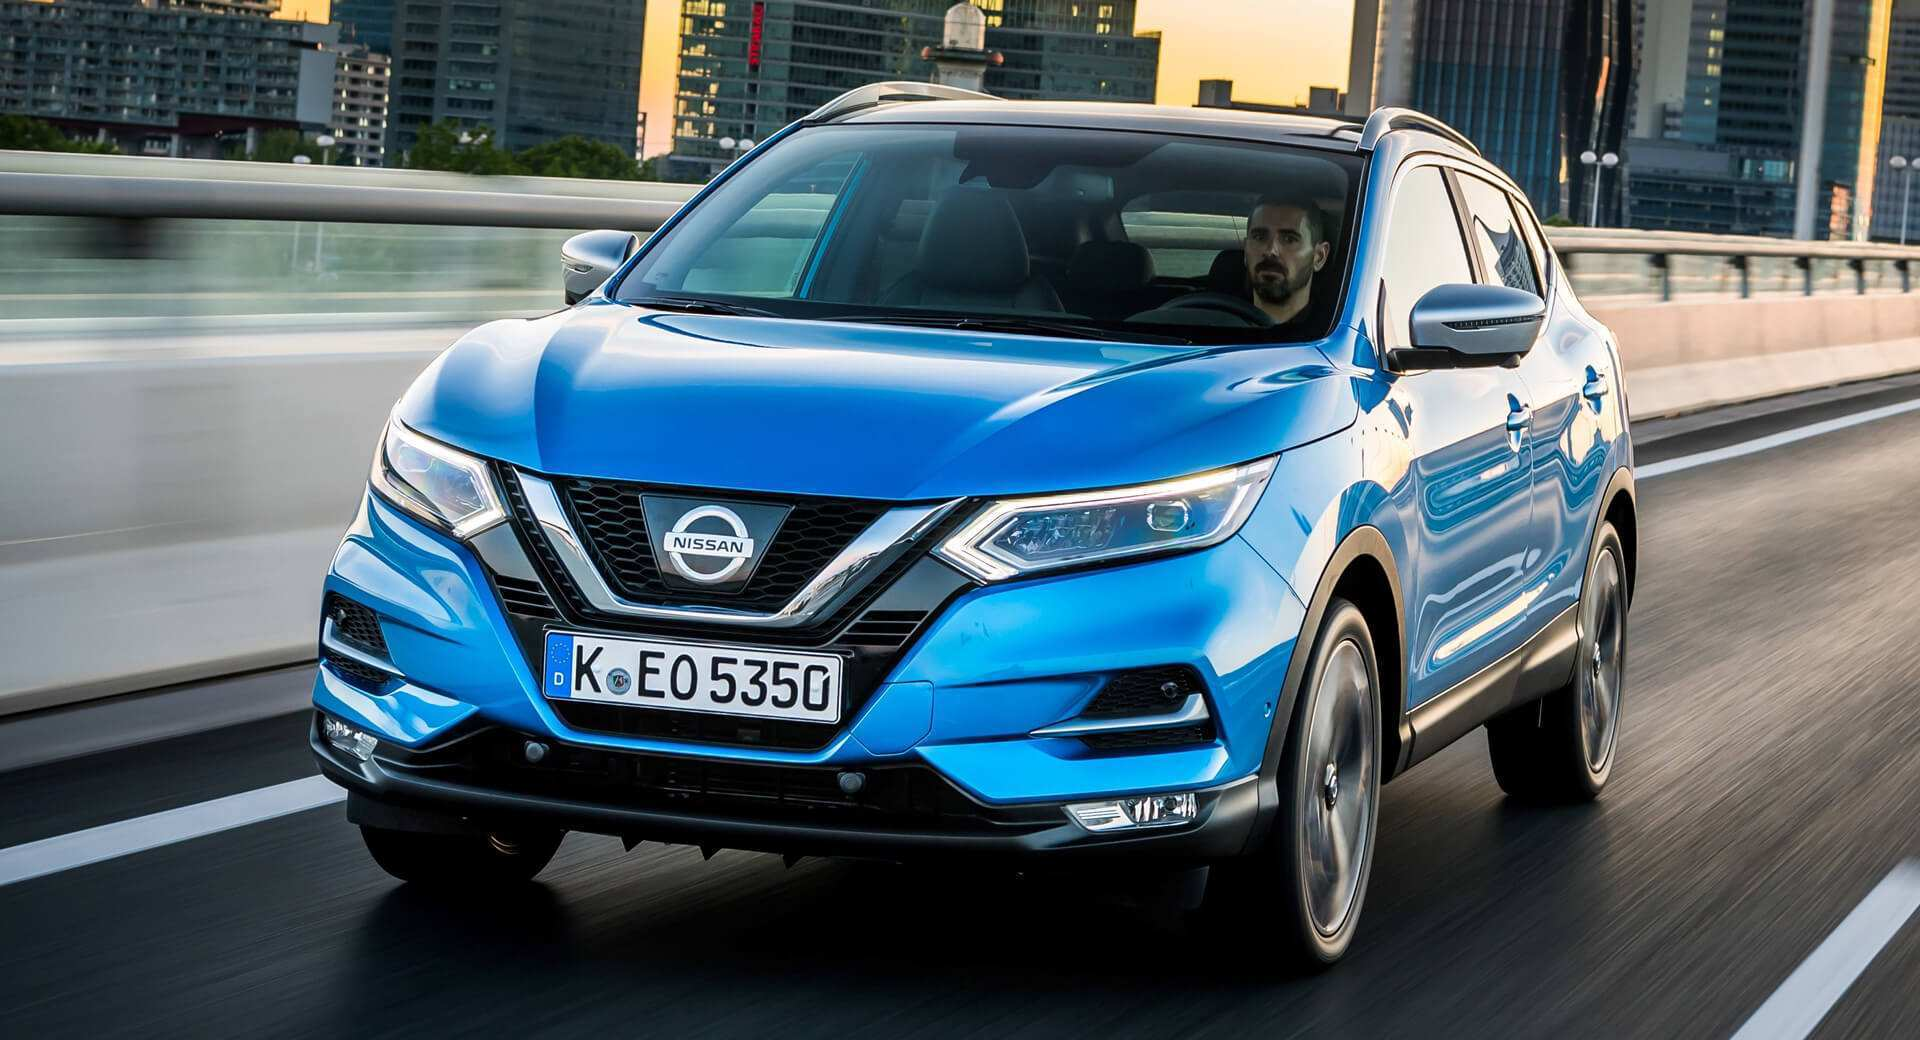 74 New Nissan Qashqai 2020 Hybrid Price And Release Date